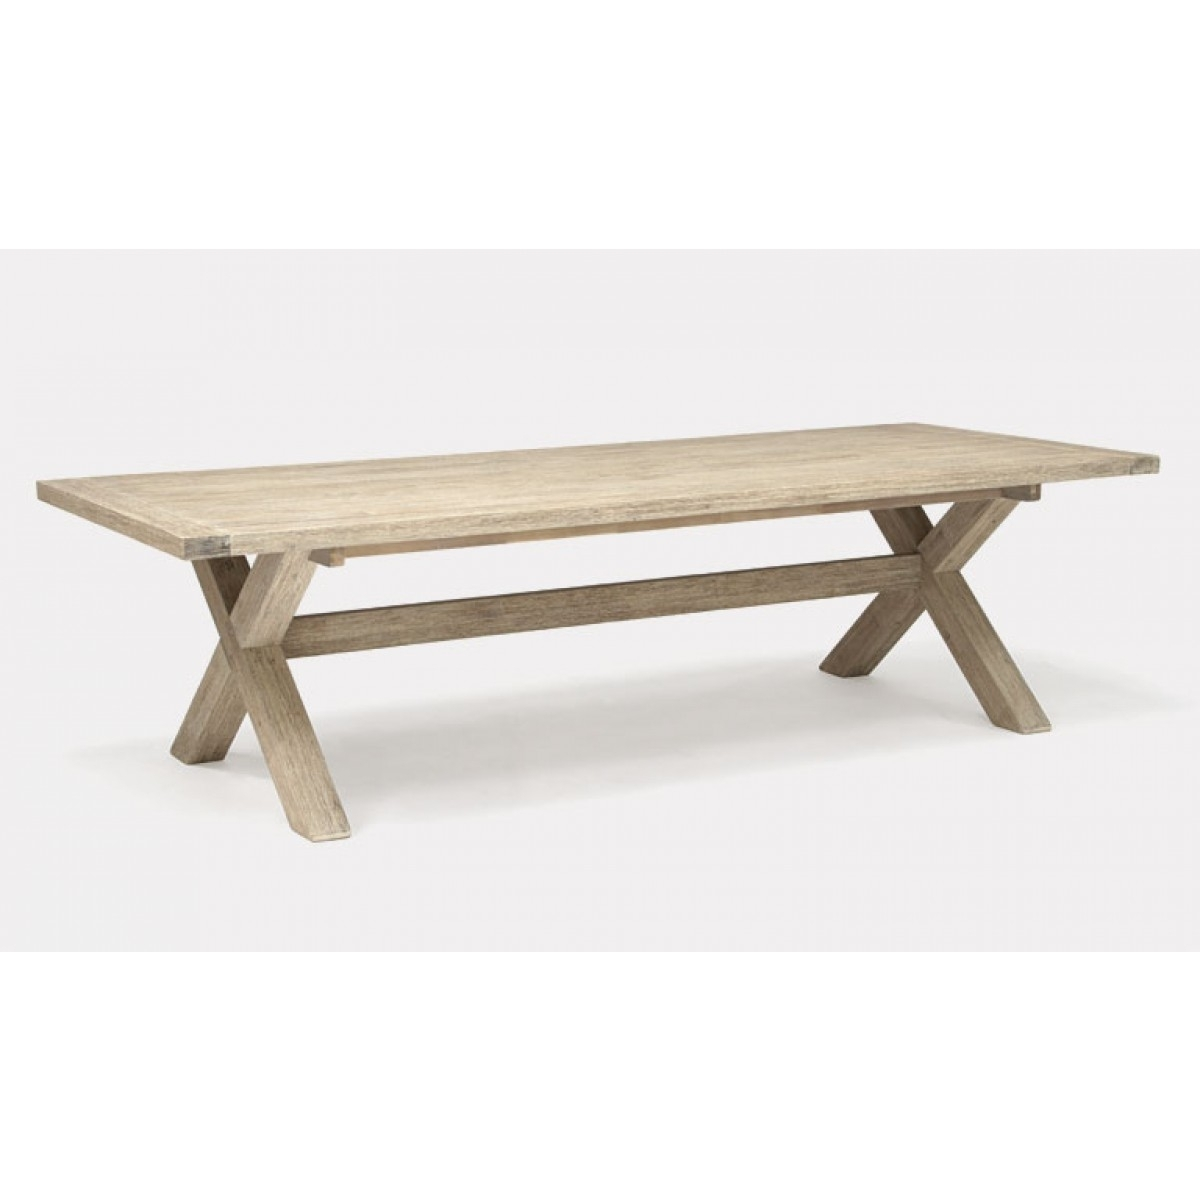 Kettler Cora Rectangular Dining Table 280 X 110 Cross Leg Best Price Pertaining To Most Recently Released Cora Dining Tables (View 3 of 20)